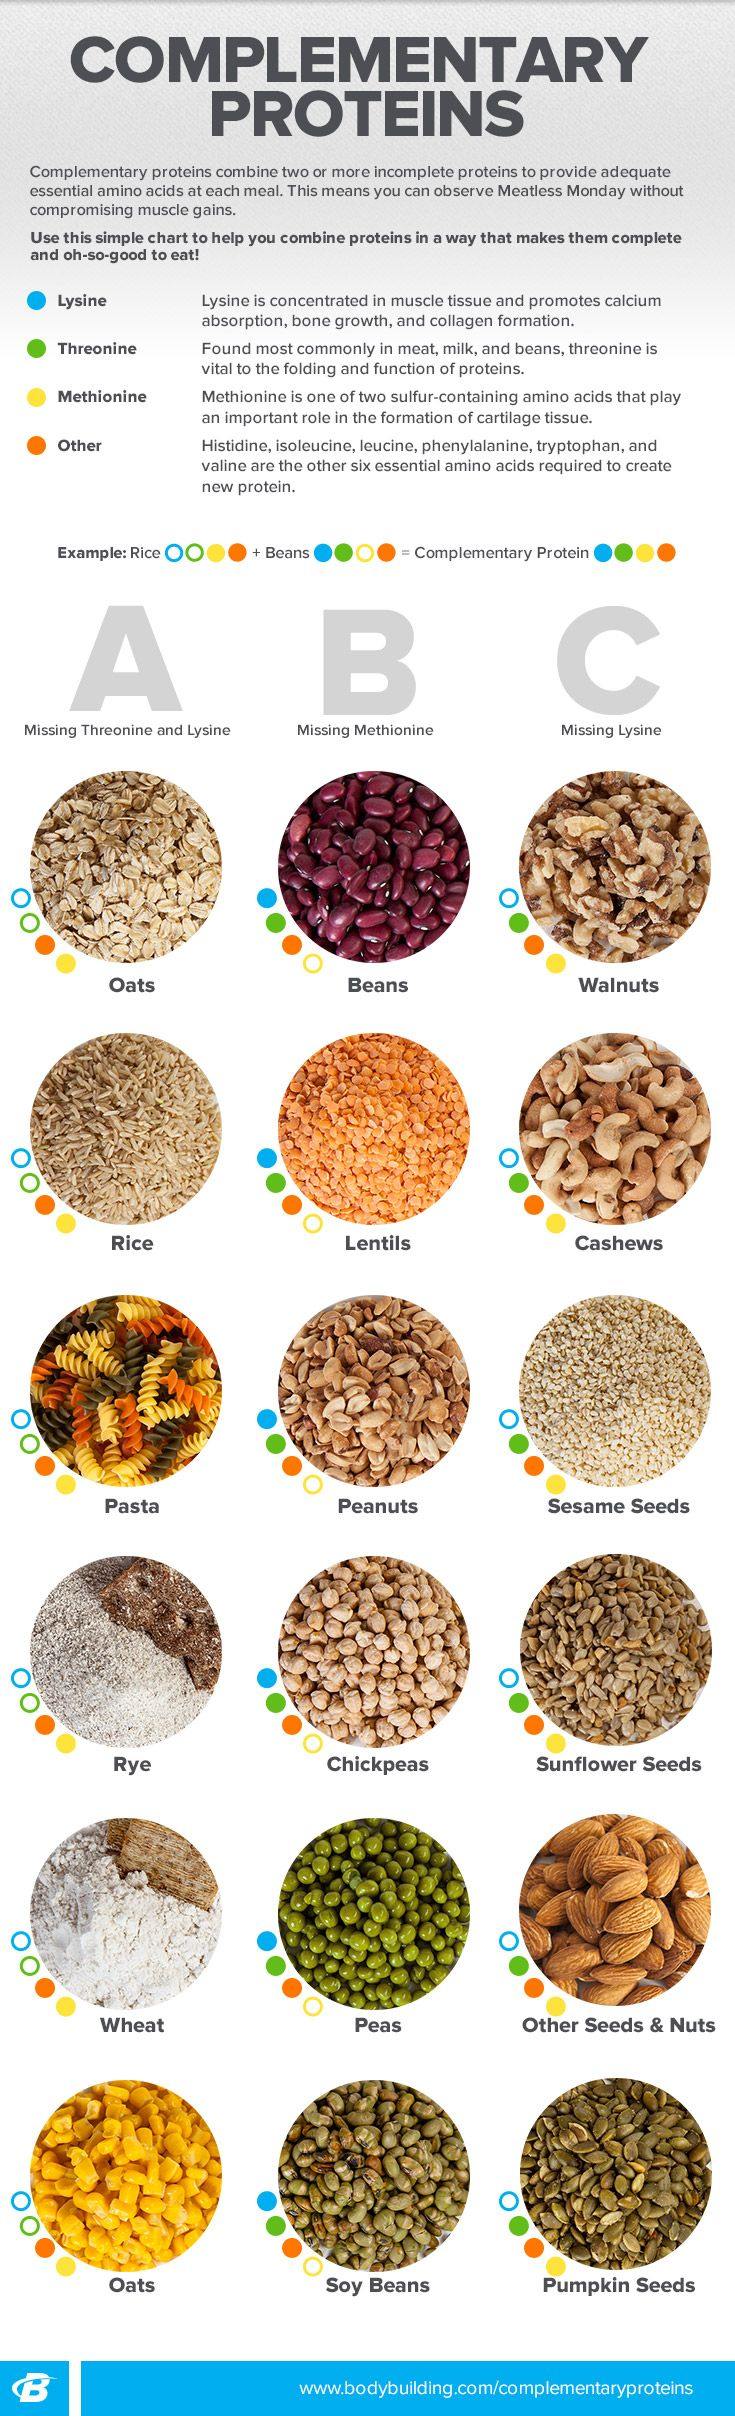 A meal doesn't have to include meat to provide you with complete protein sources. Take the guesswork out of mealtime with this infographic that makes choosing complementary proteins as easy as ABC!